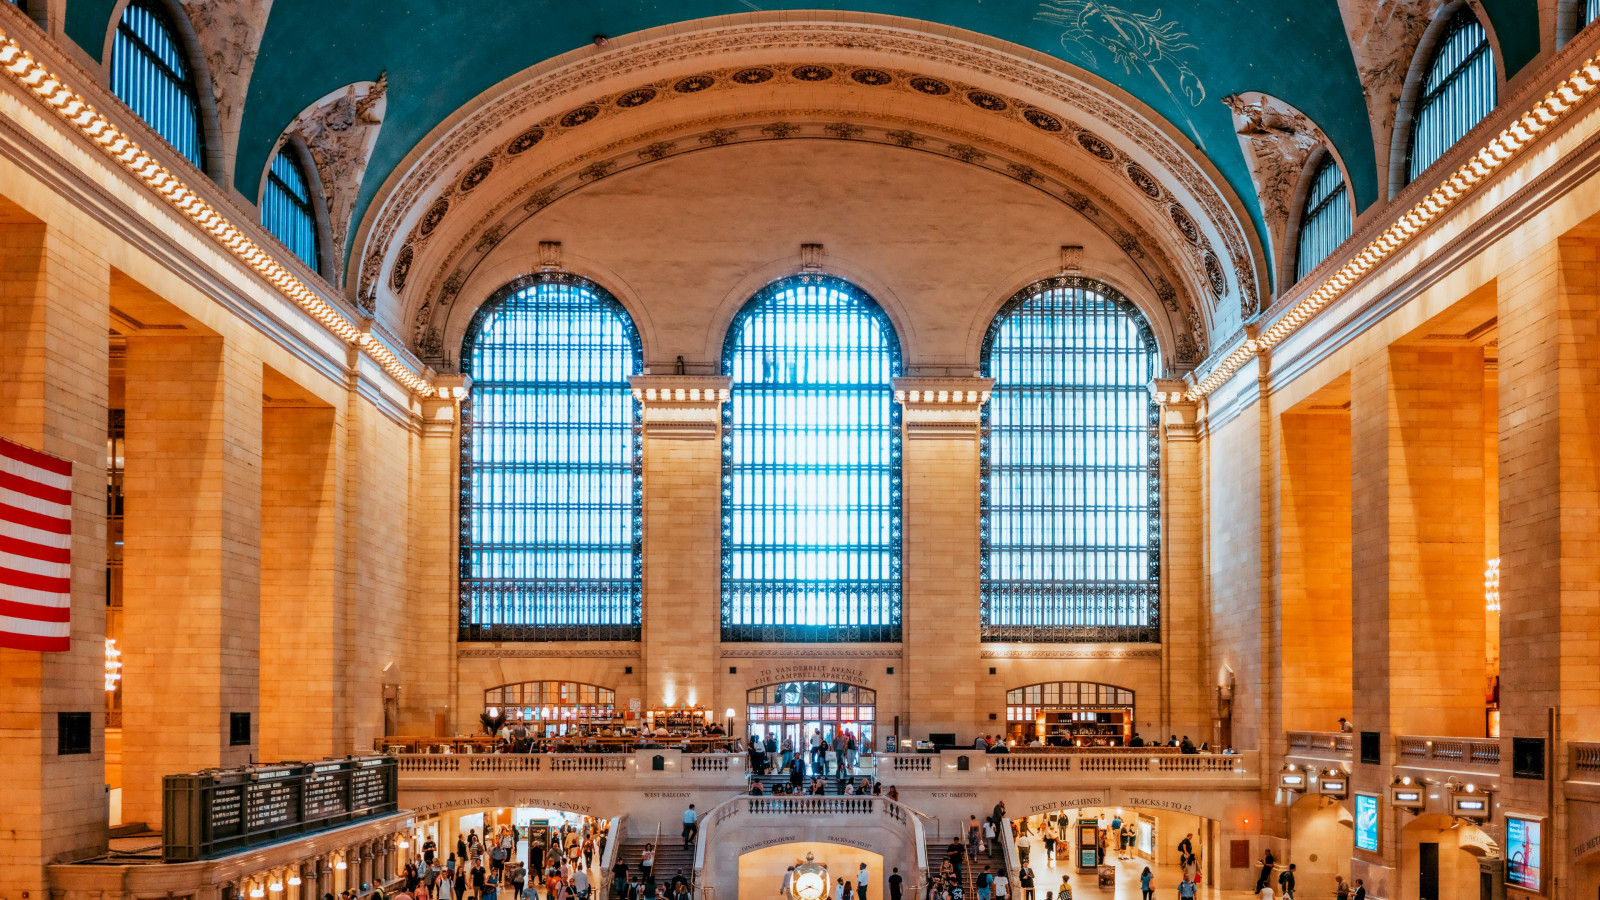 Grand Central Terminal, New York, United States | 1600x900 wallpaper